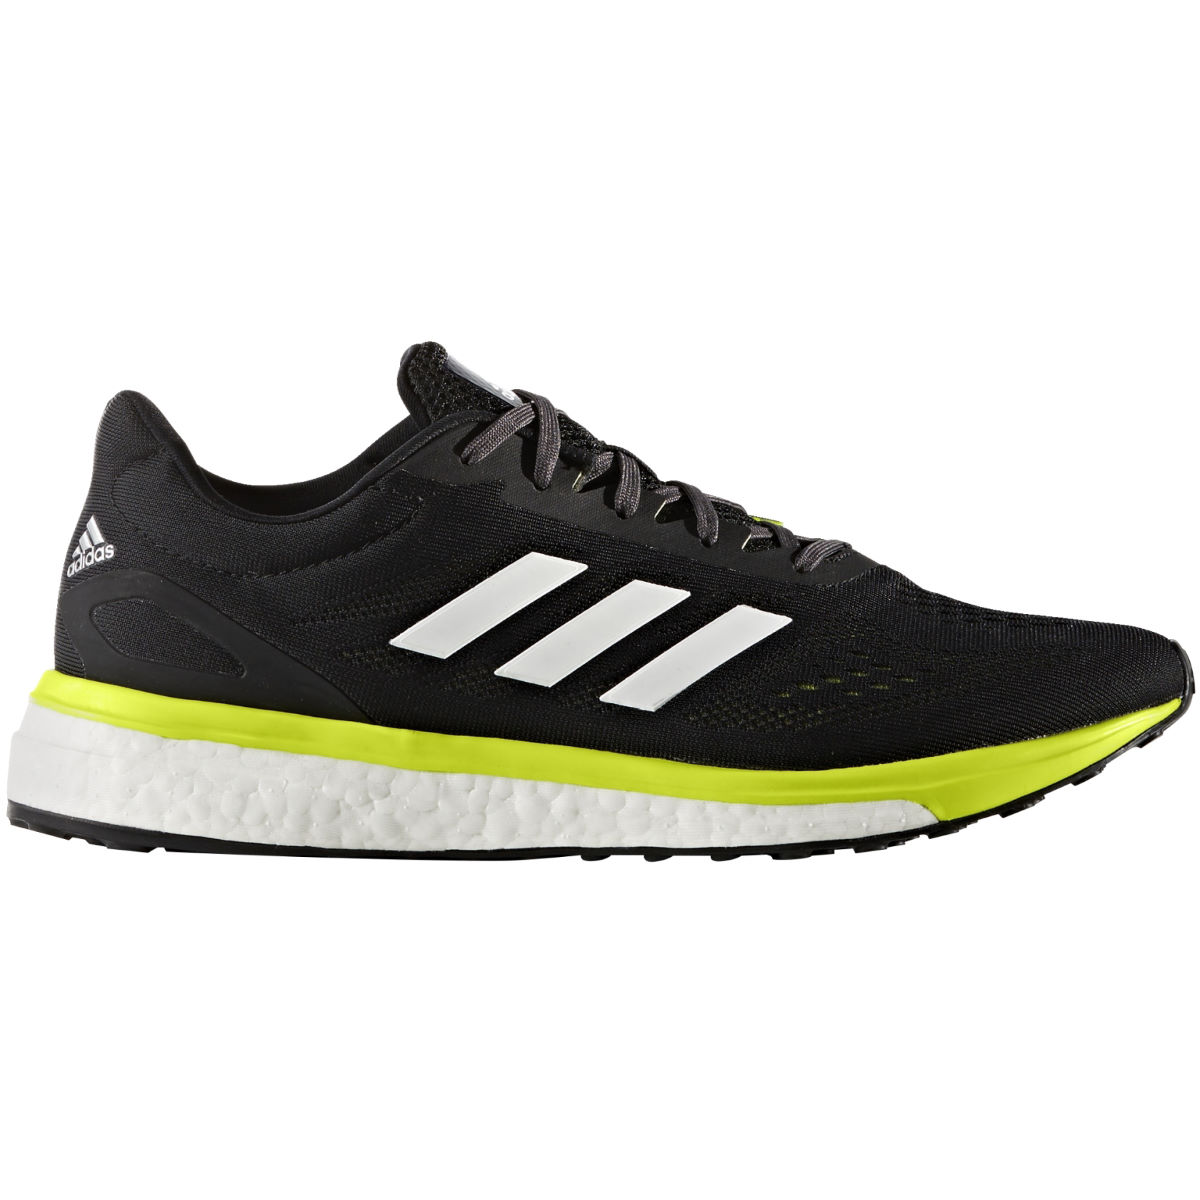 Adidas Response LT (SS17)   Cushion Running Shoes